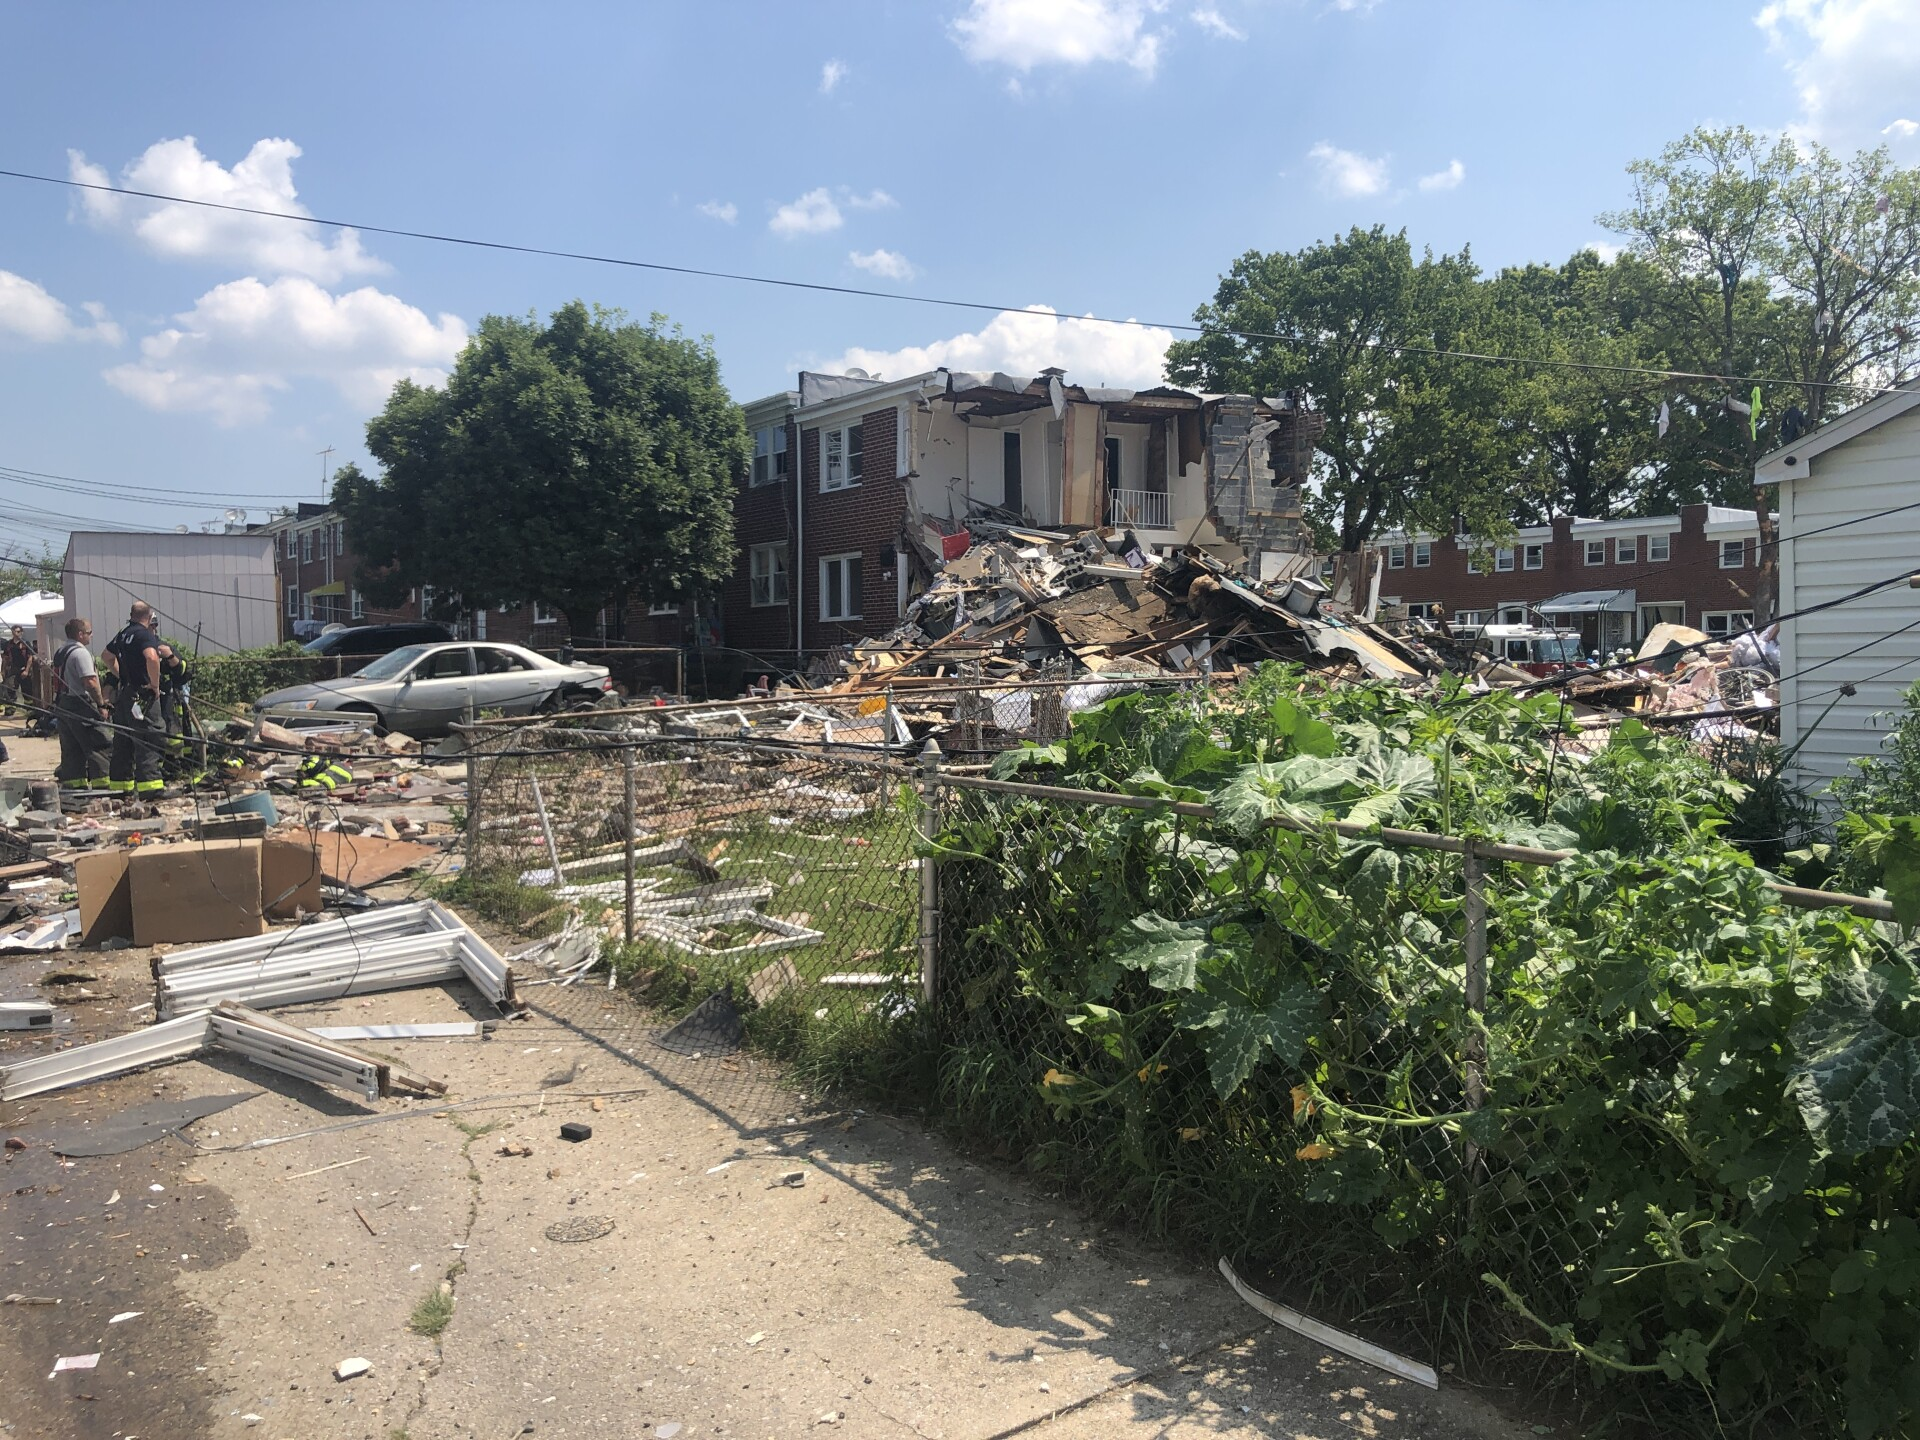 Deadly explosion turns NW Baltimore homes into rubble